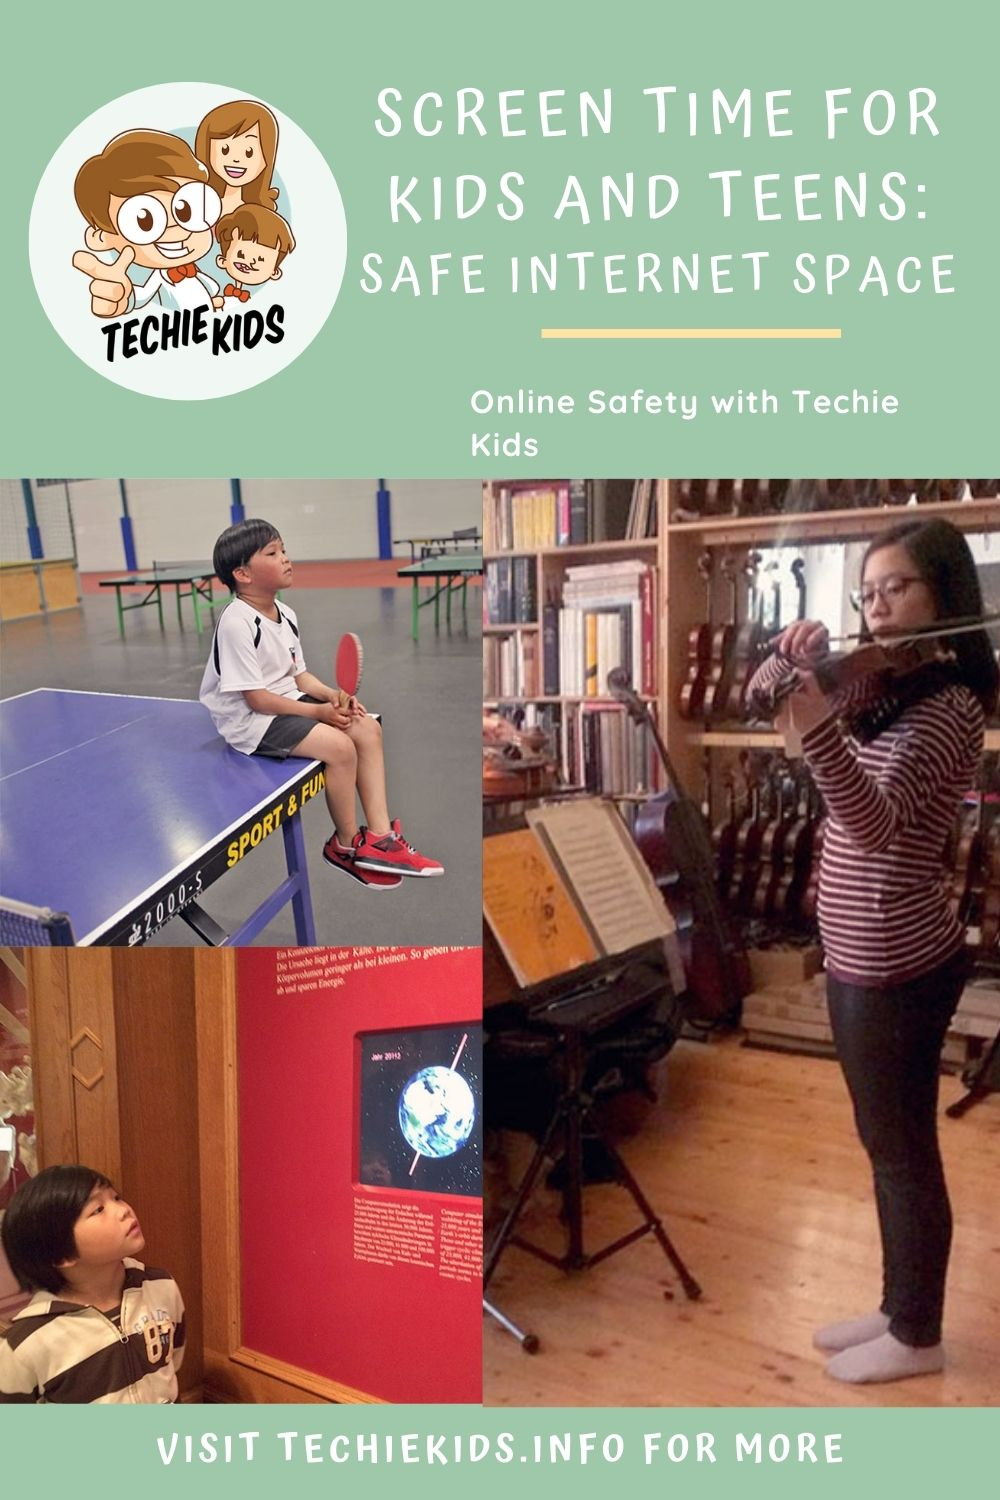 Screen Time For Kids And Teens: Finding Safe Games and Internet Space